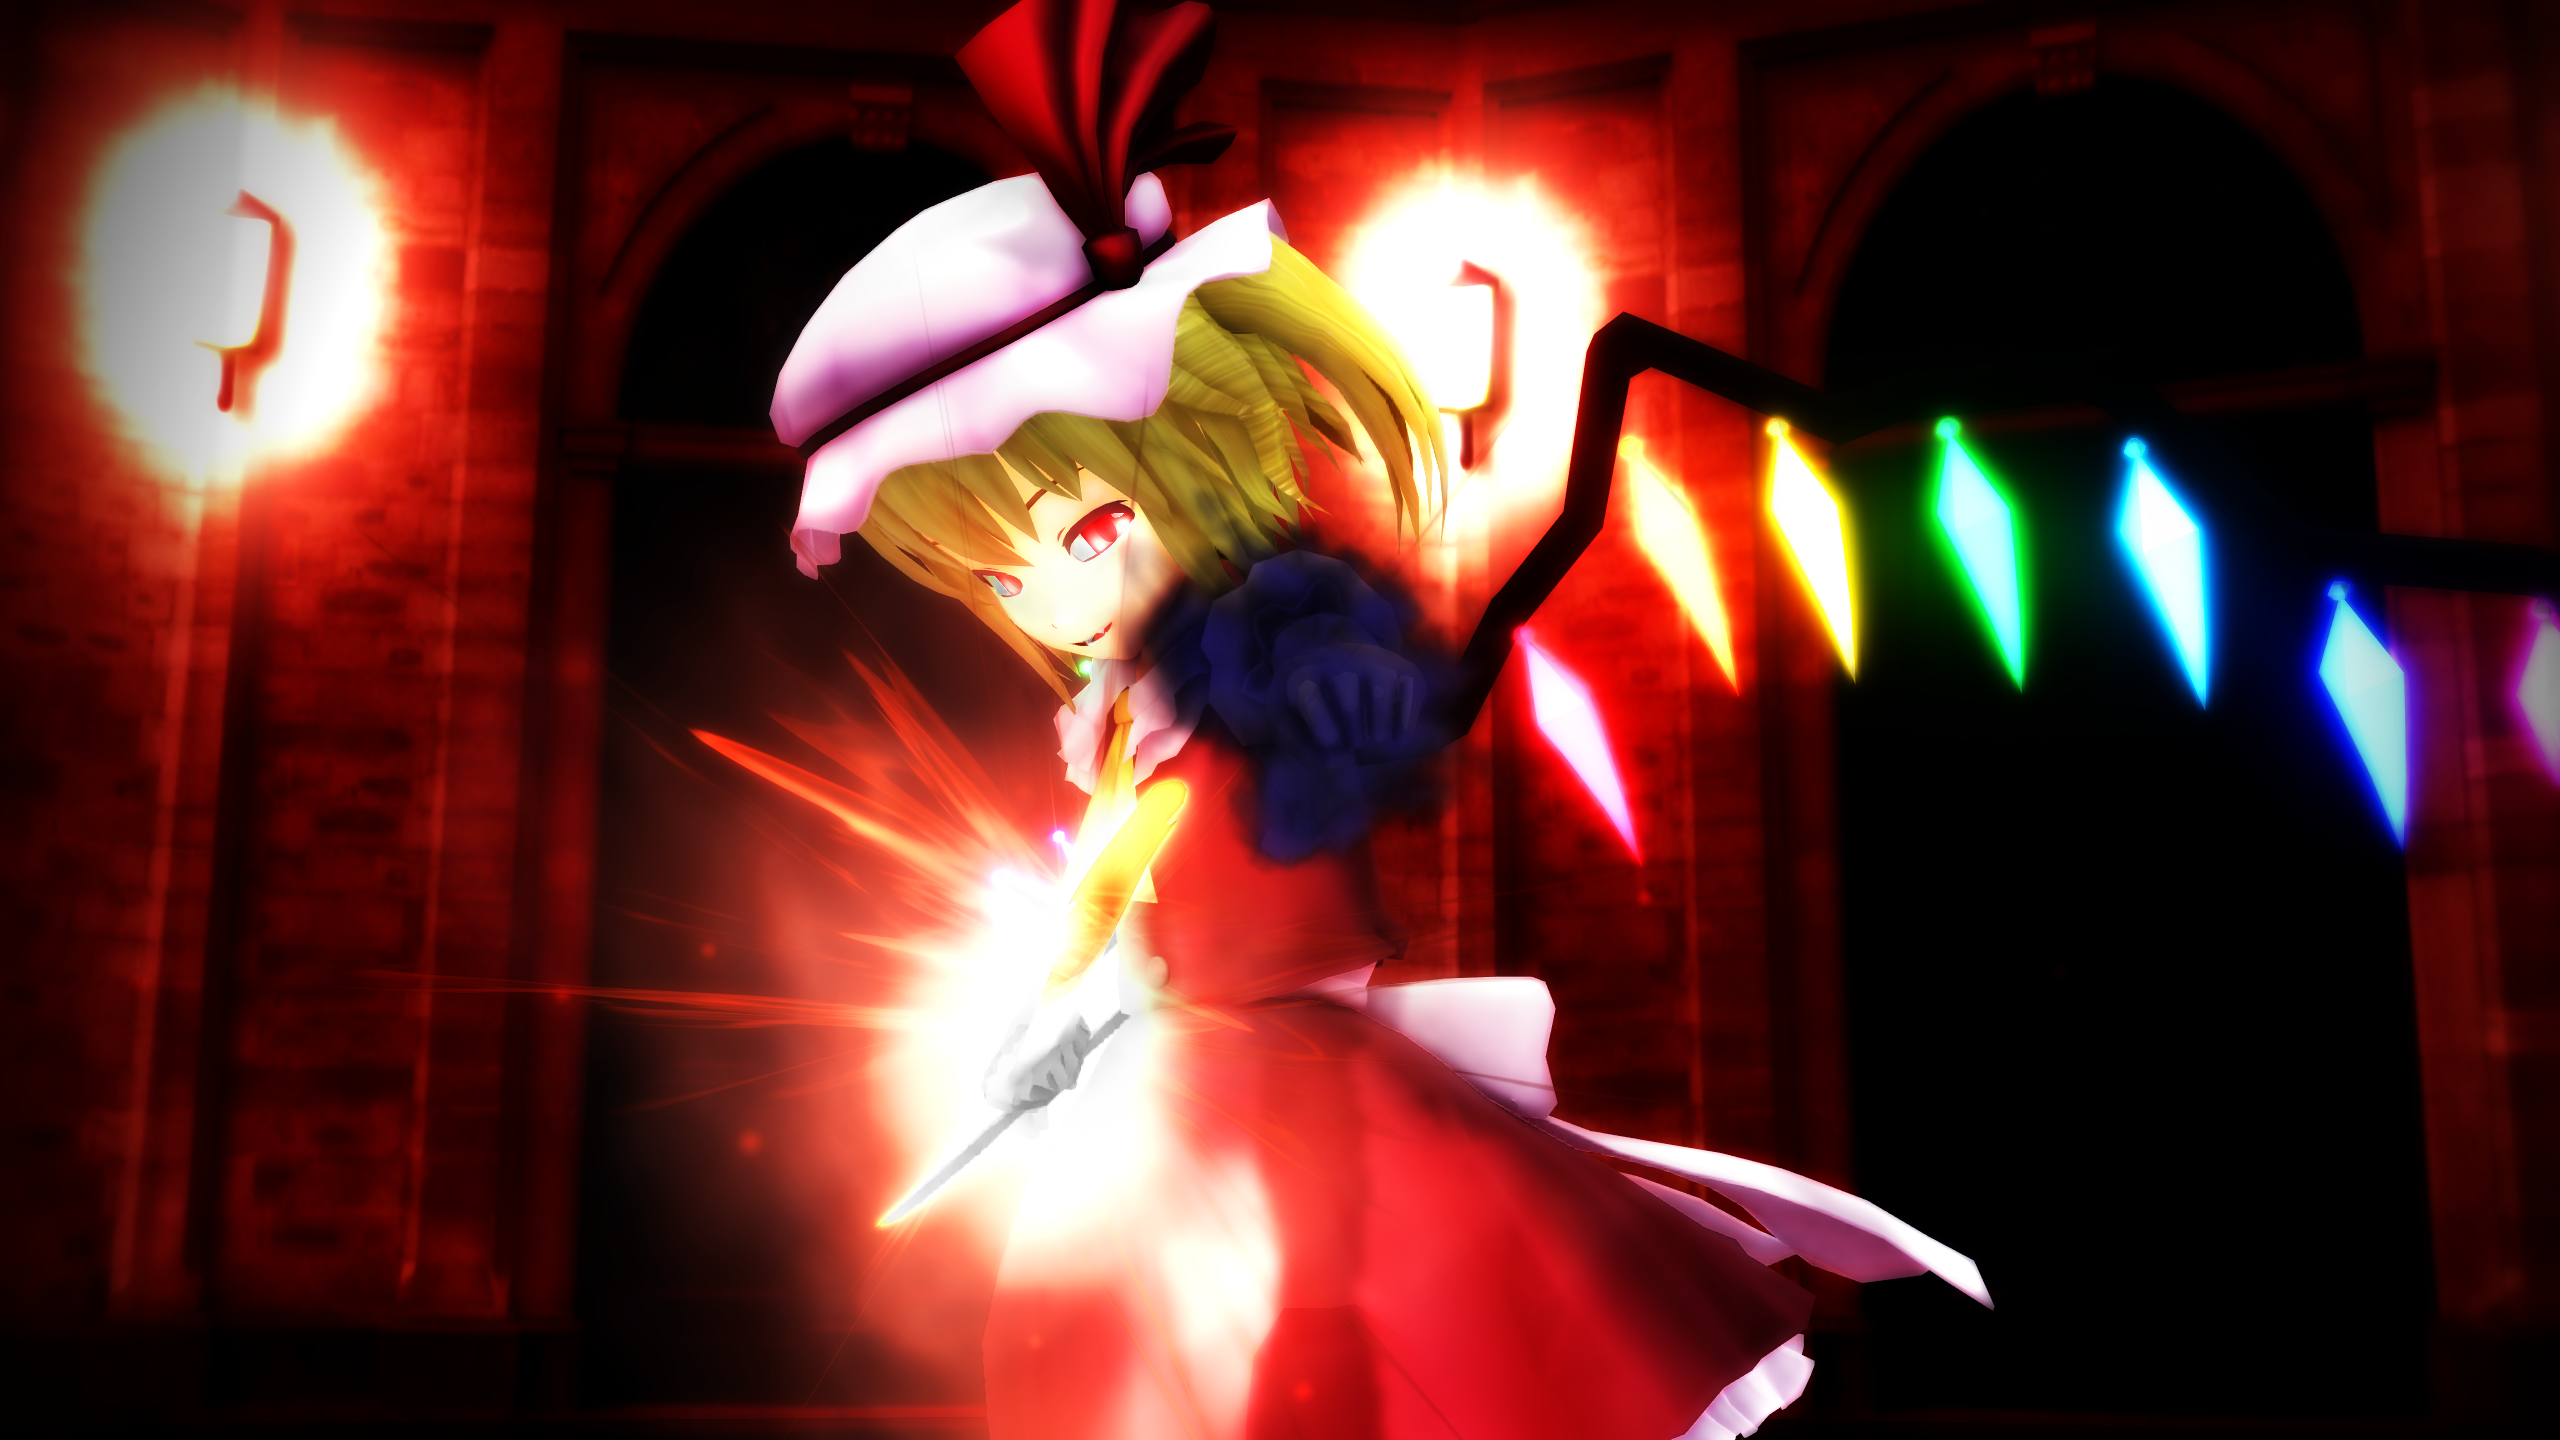 20 Day Touhou Meme 'Challenge' Day #1 by headstert